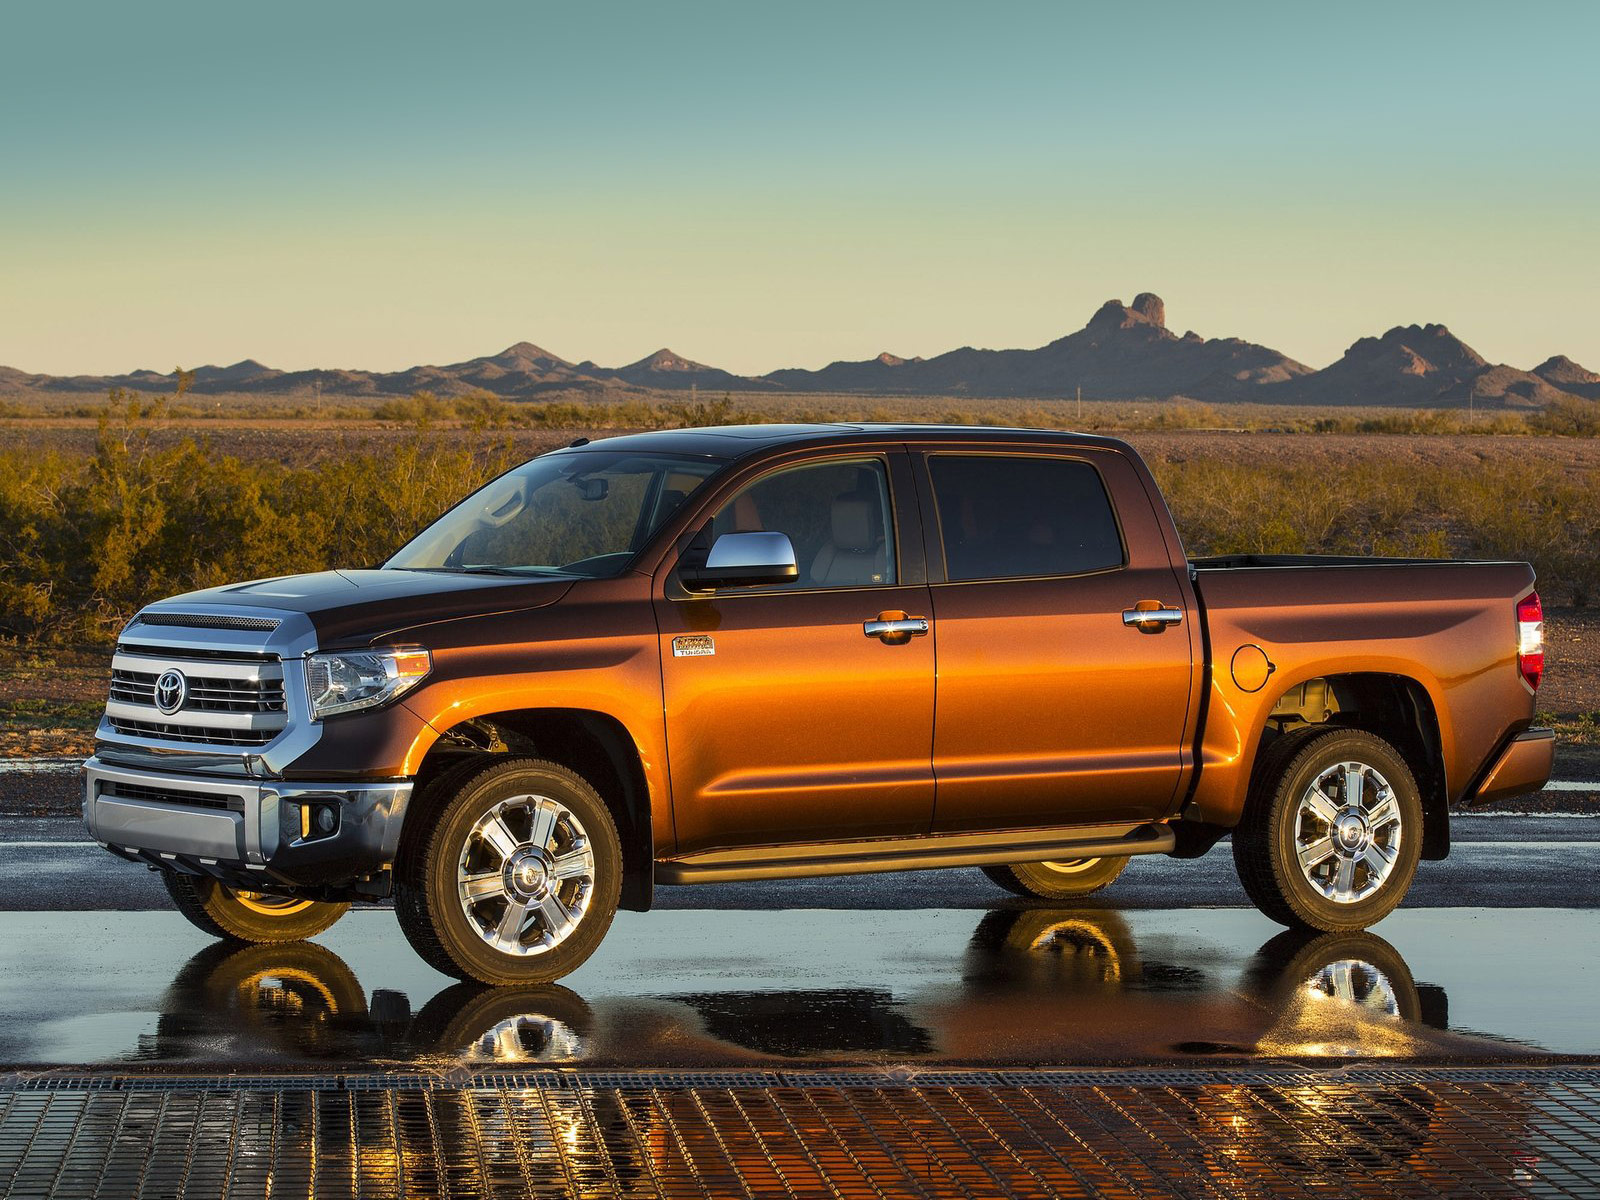 Jd Auto Sales >> Toyota Car insurance information 2014 Tundra Japanese car photos